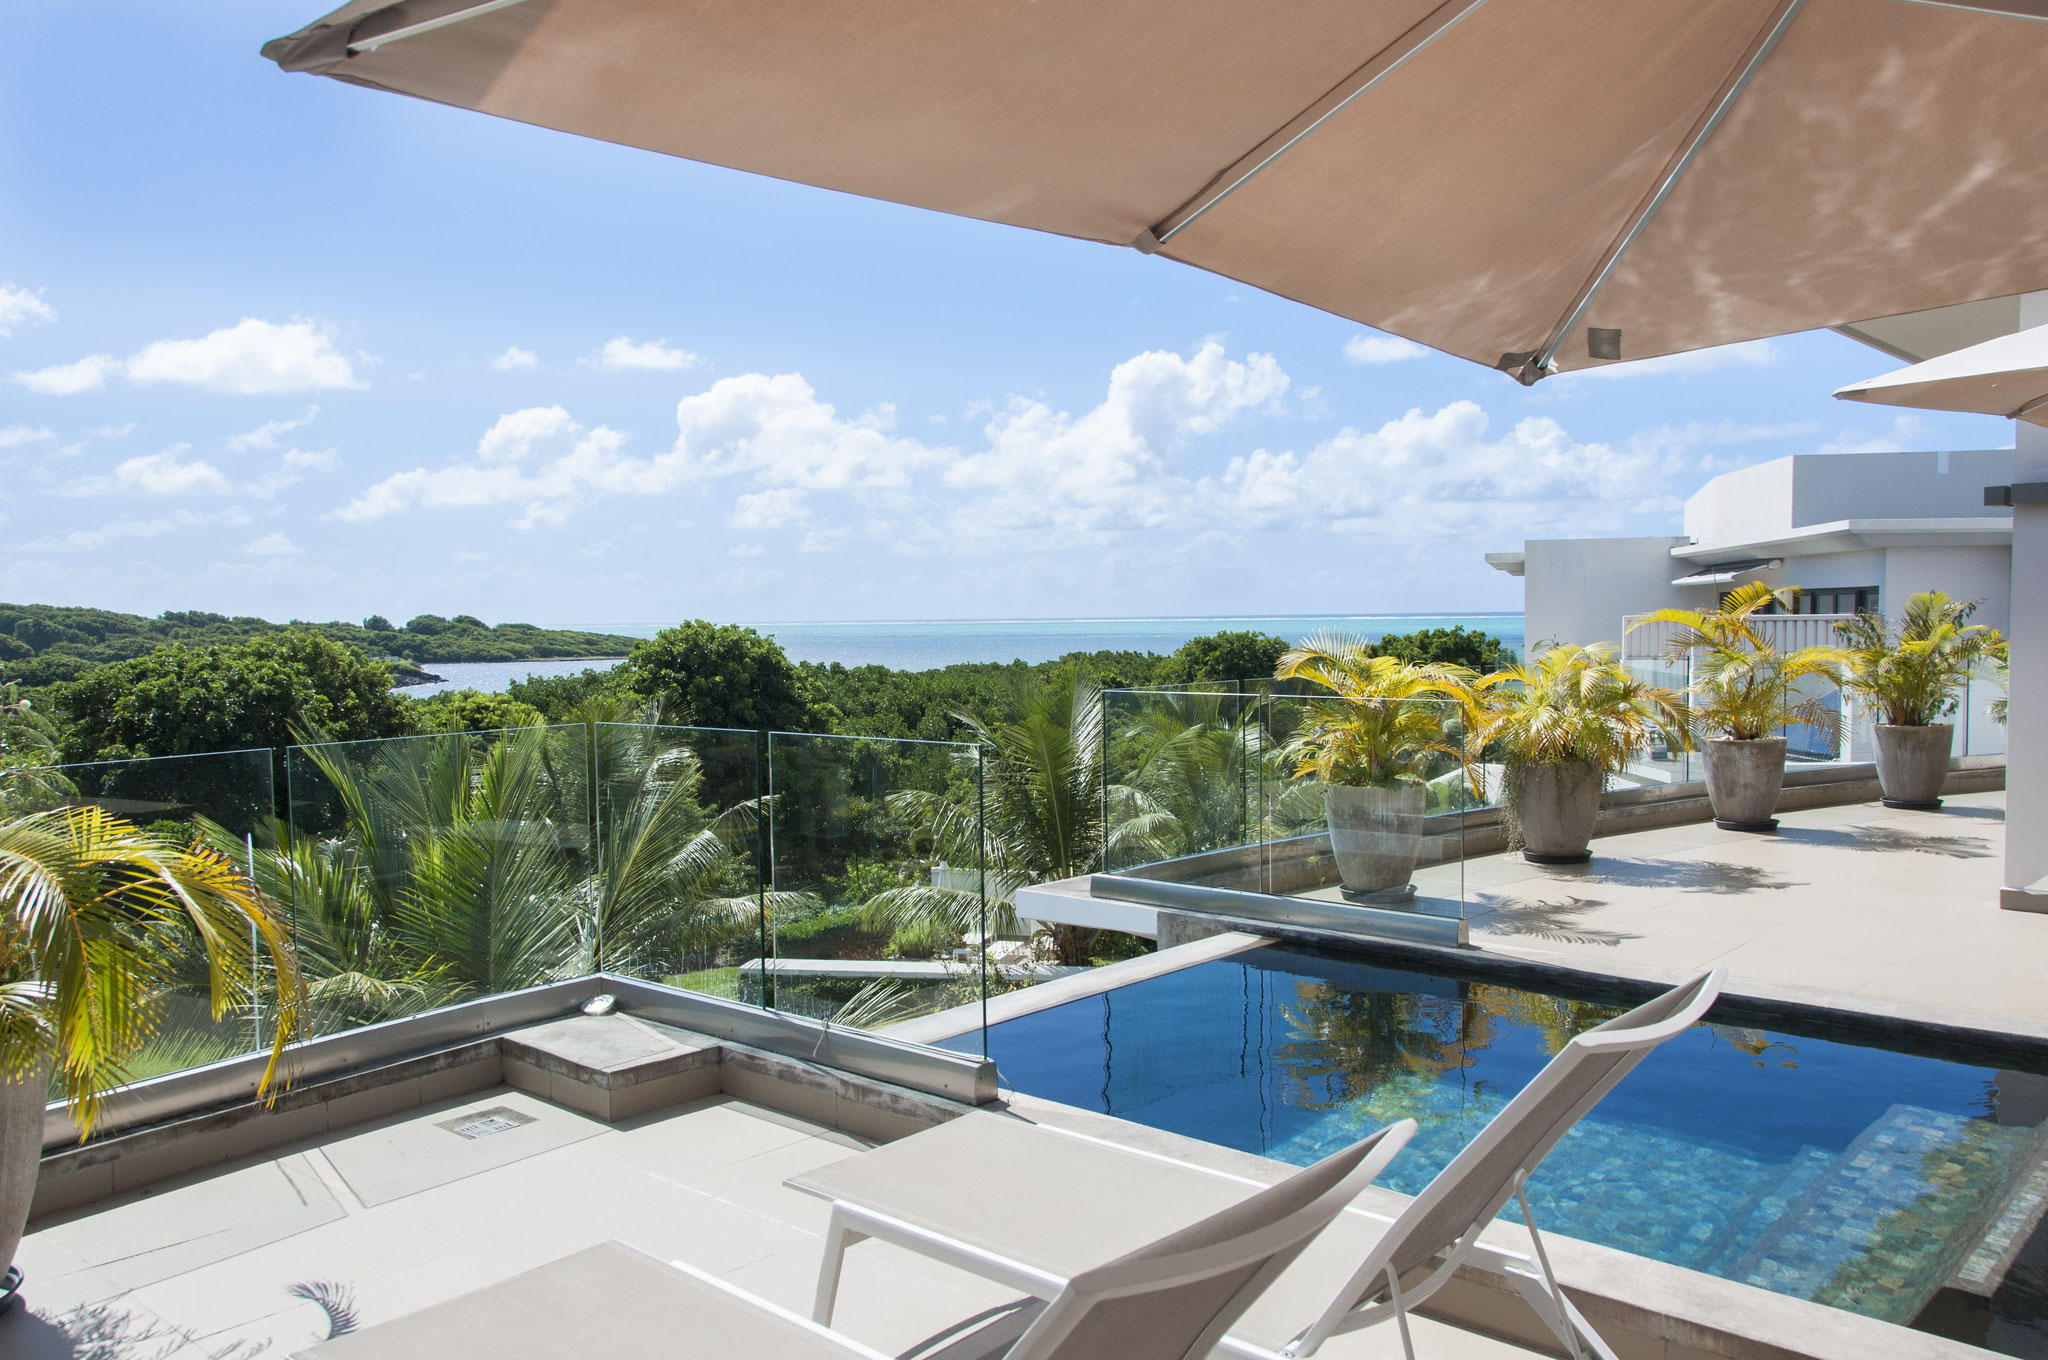 RESALE EXCEPTIONAL PROPERTY SEA VIEW IN THE WORLD - PENTHOUSE IRS AZURI IN MAURITIUS ISLAND By JINVESTY